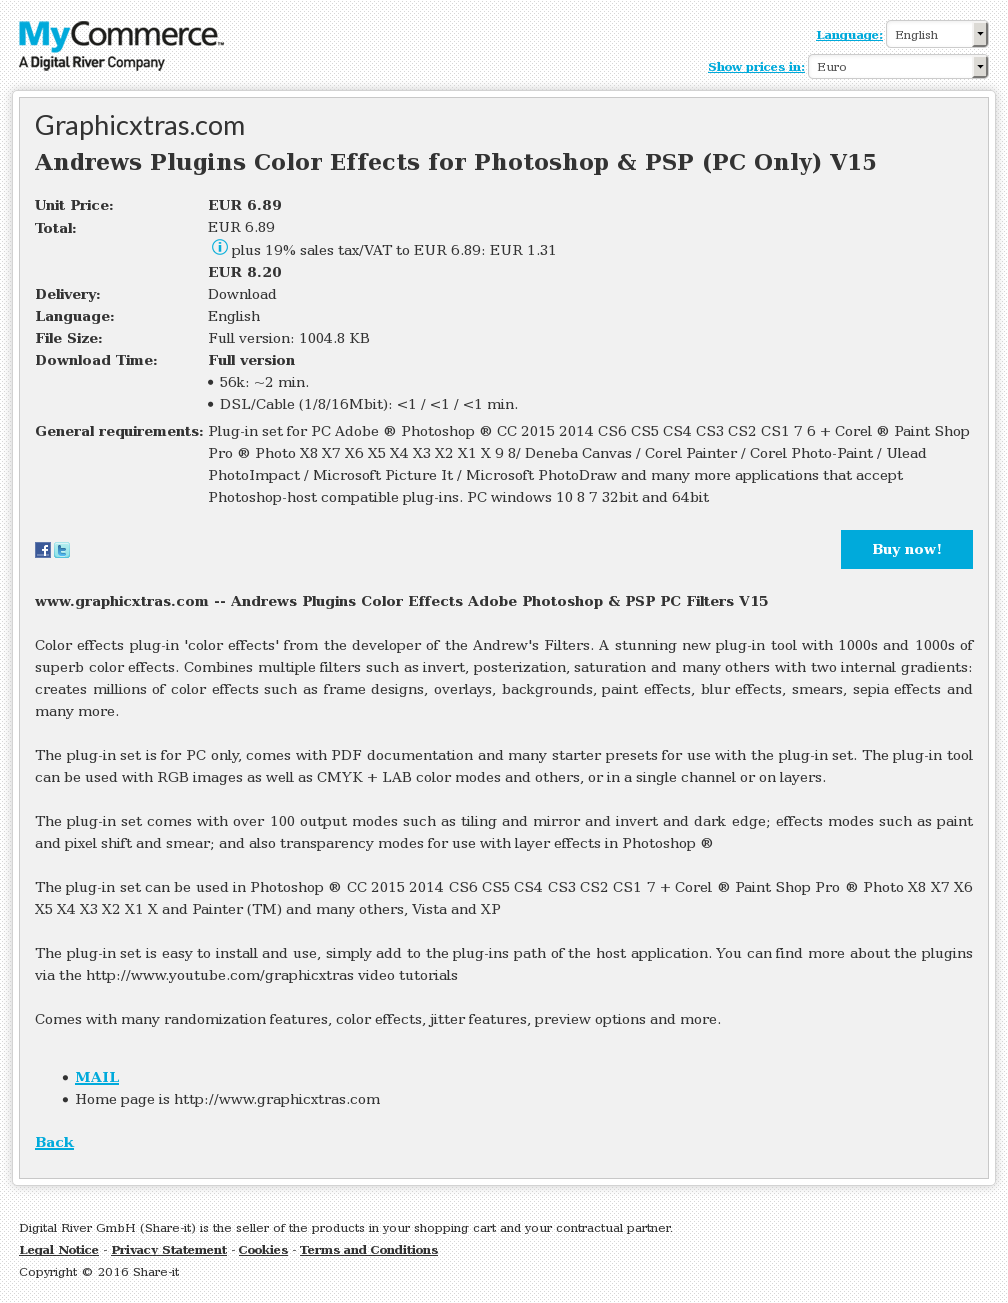 Andrews Plugins Color Effects Photoshop Psp Only Review